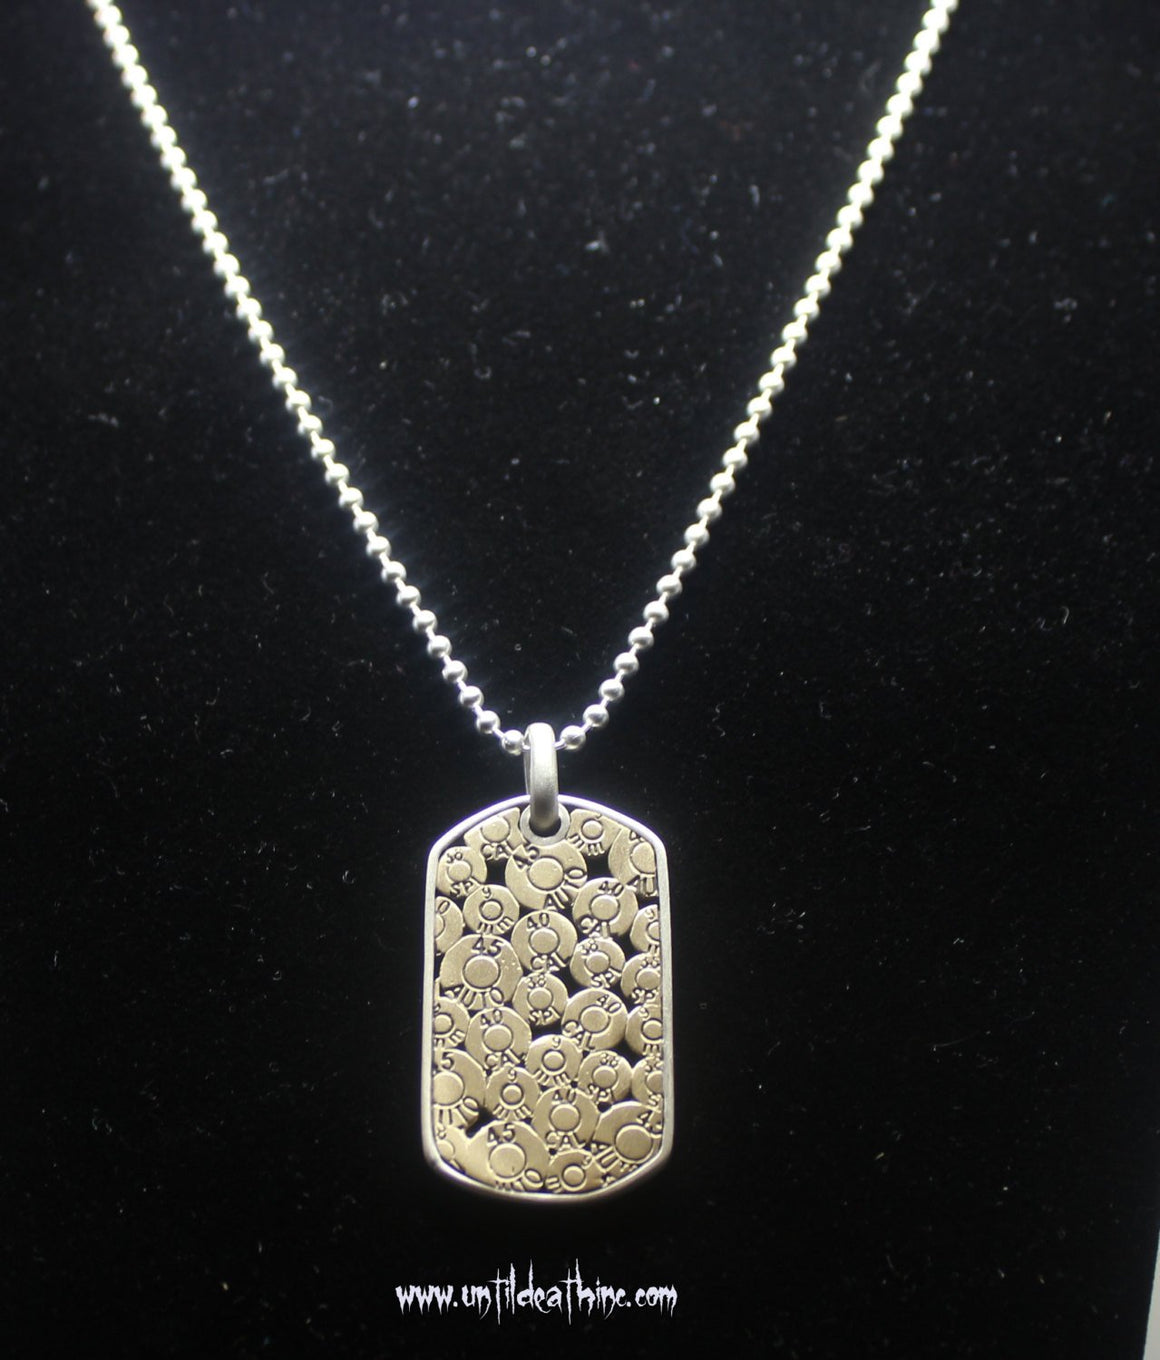 9MM Bullet Collage Dog Tag Pendant